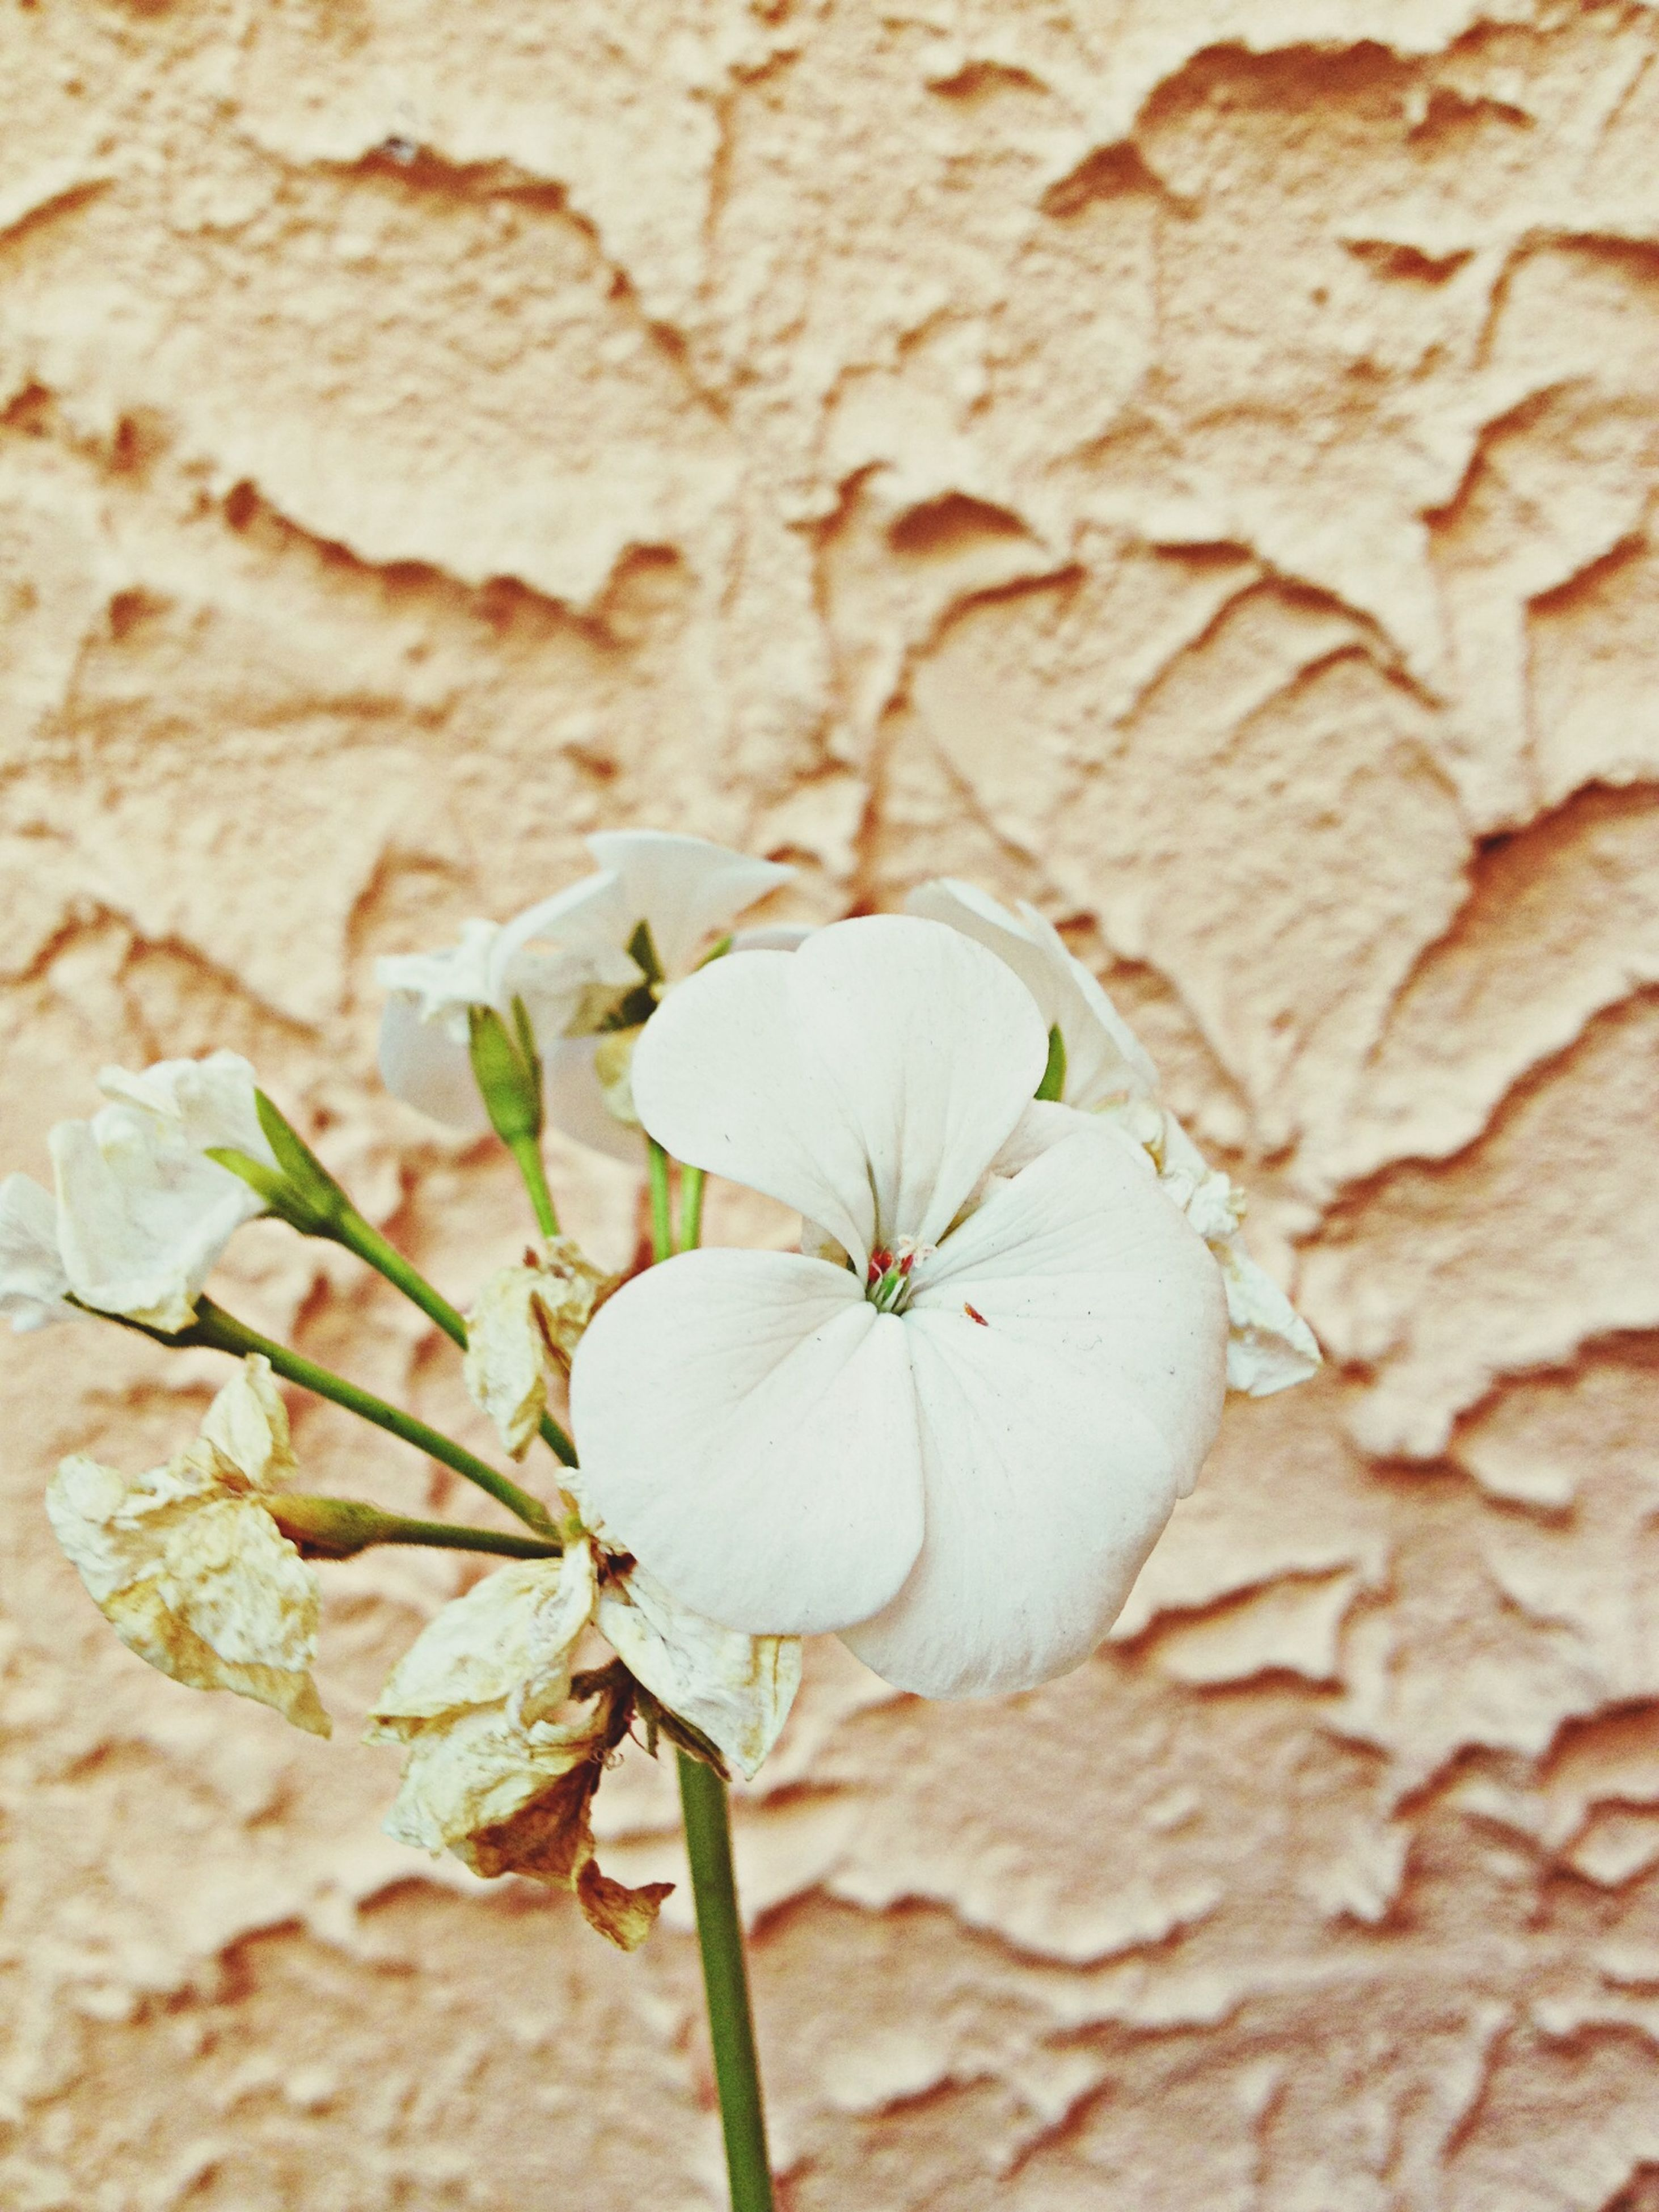 flower, fragility, freshness, close-up, petal, flower head, growth, nature, focus on foreground, beauty in nature, single flower, plant, stem, botany, day, outdoors, high angle view, no people, blooming, white color